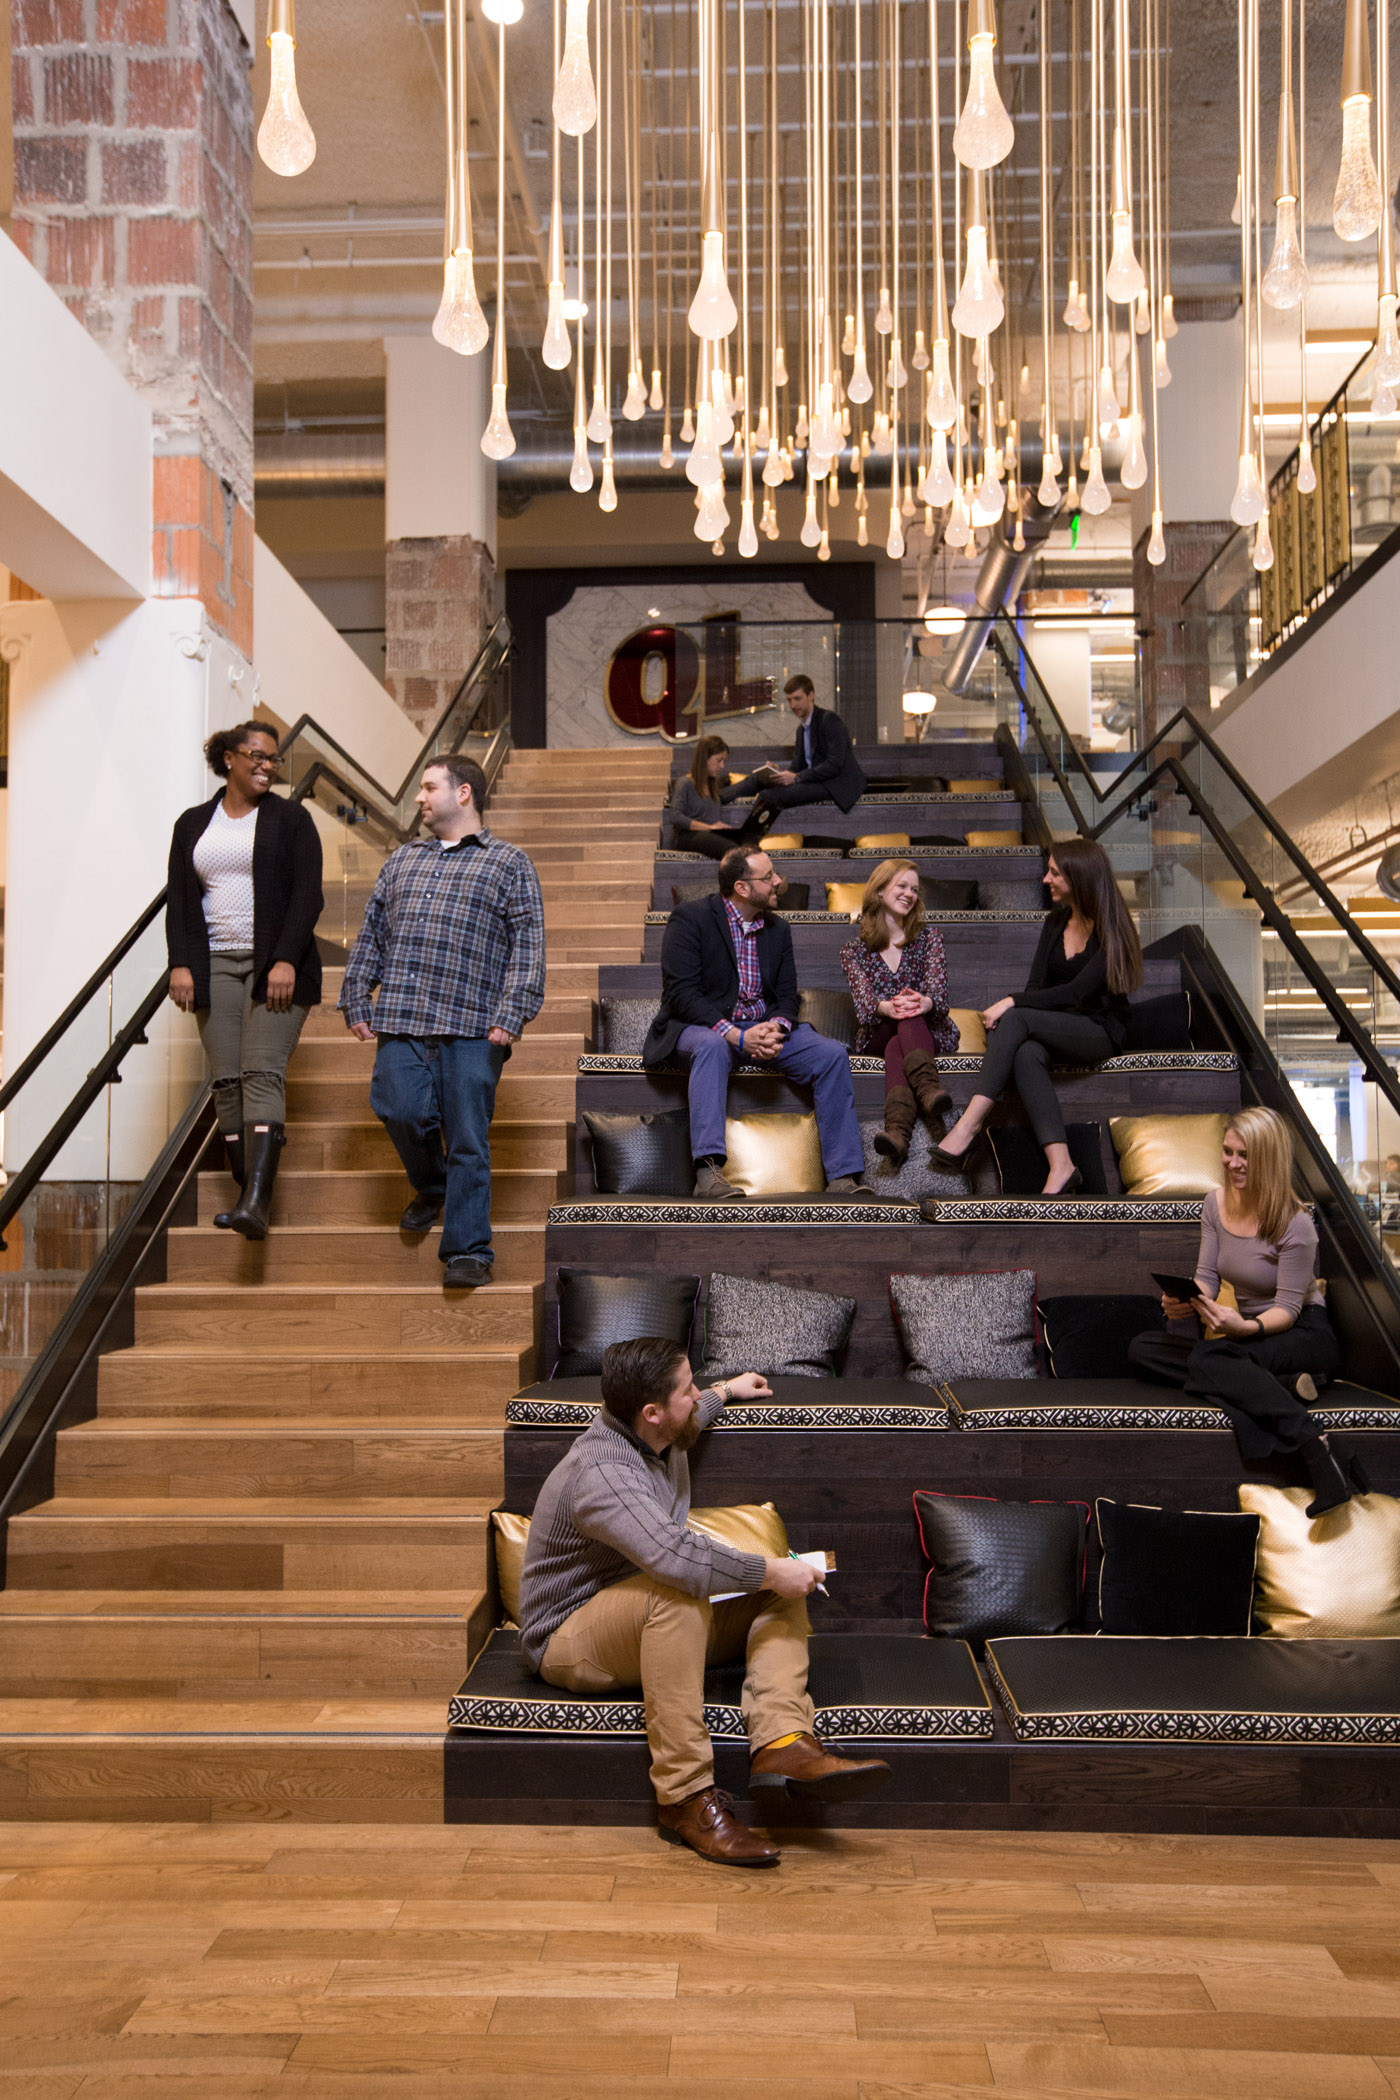 Culture Photo Of The Cleveland Office, 2017.